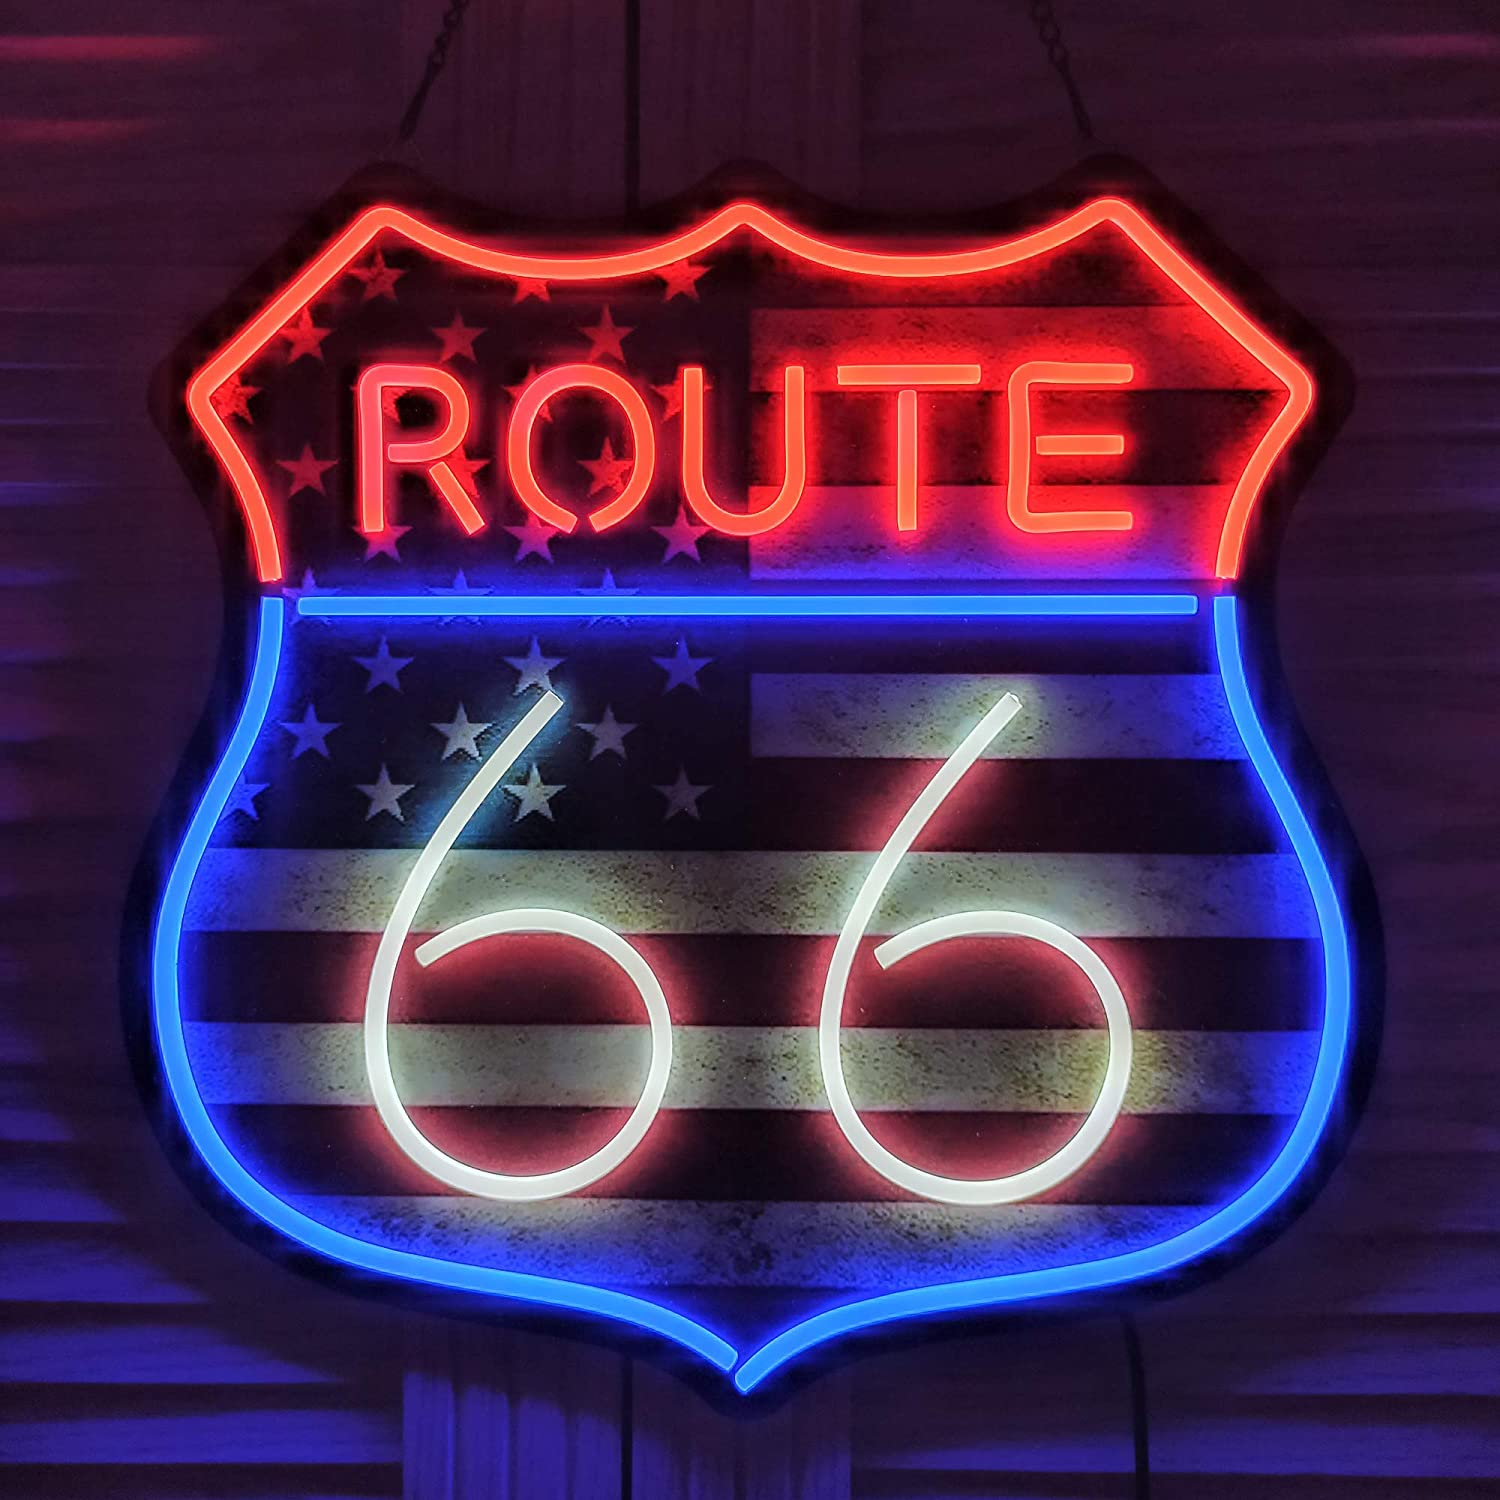 Ultrathin LED Neon Sign Art Wall Lights for Beer Bar Club Bedroom Windows Glass Hotel Pub Cafe Wedding Birthday Party Gifts (66 Route)